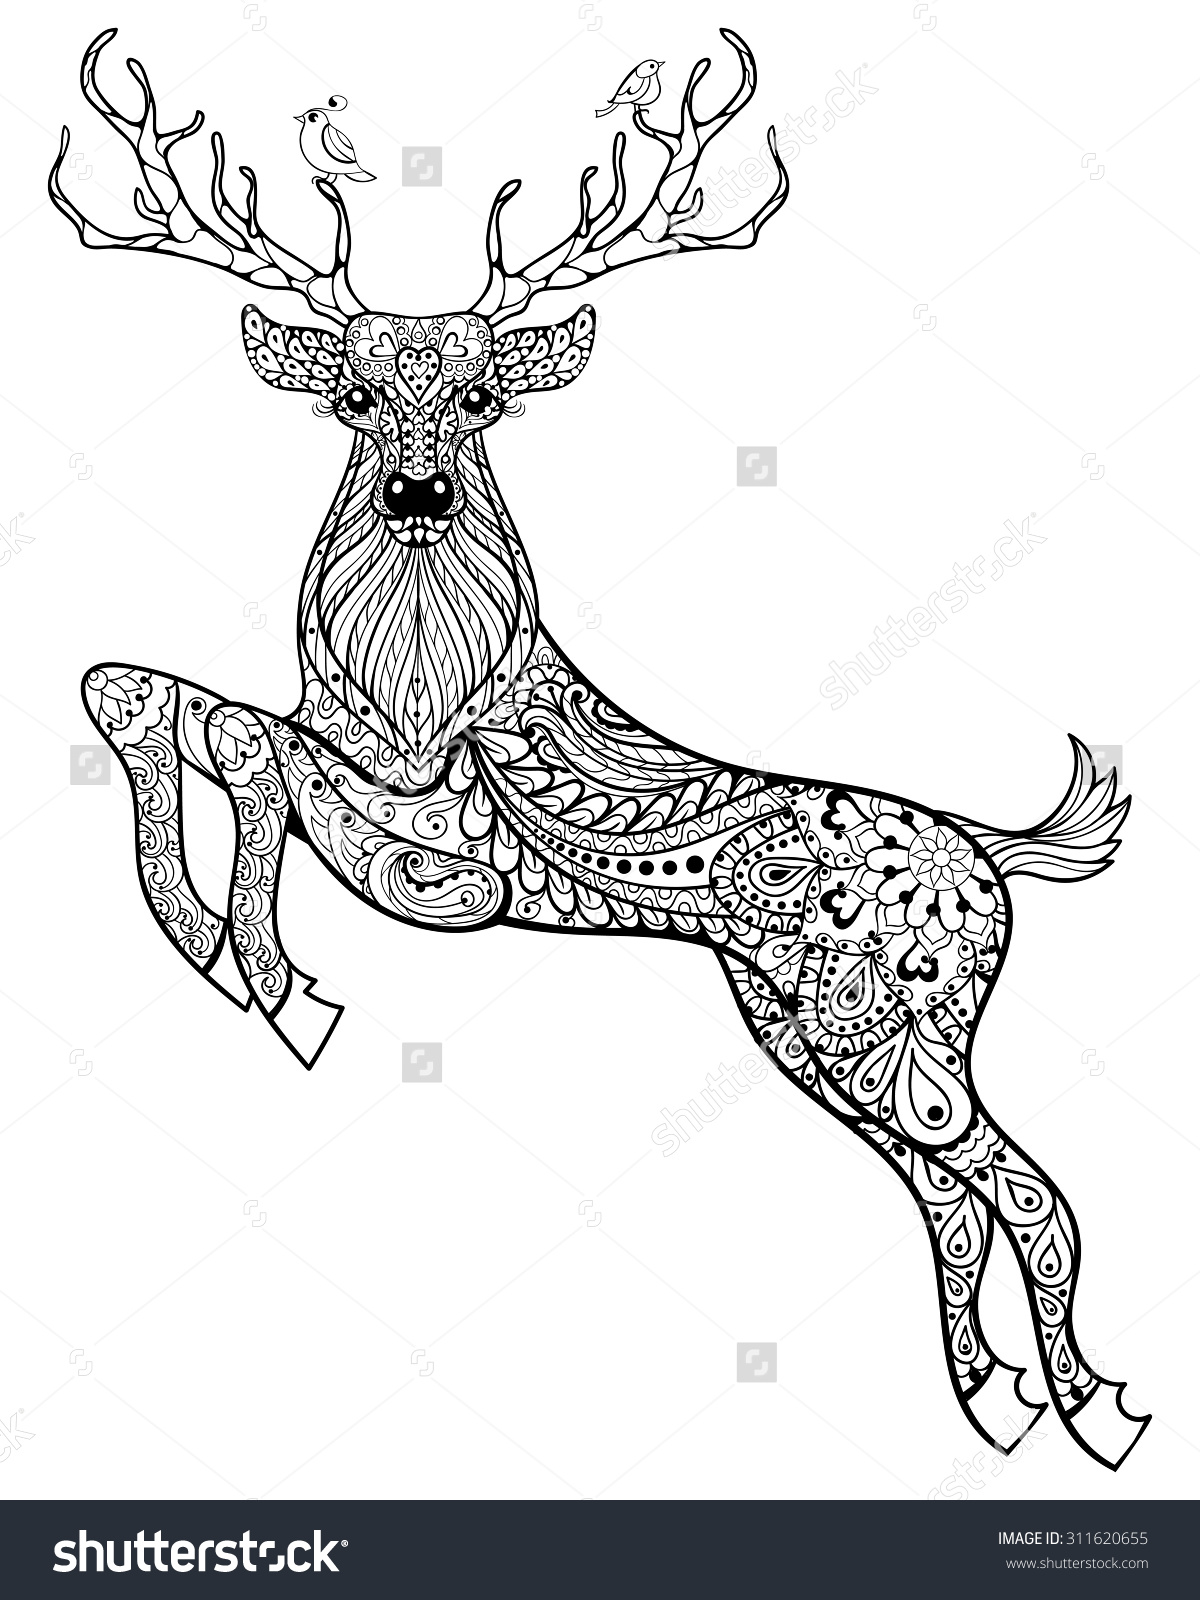 Drawn reindeer color Coloring Page Draw Draw With